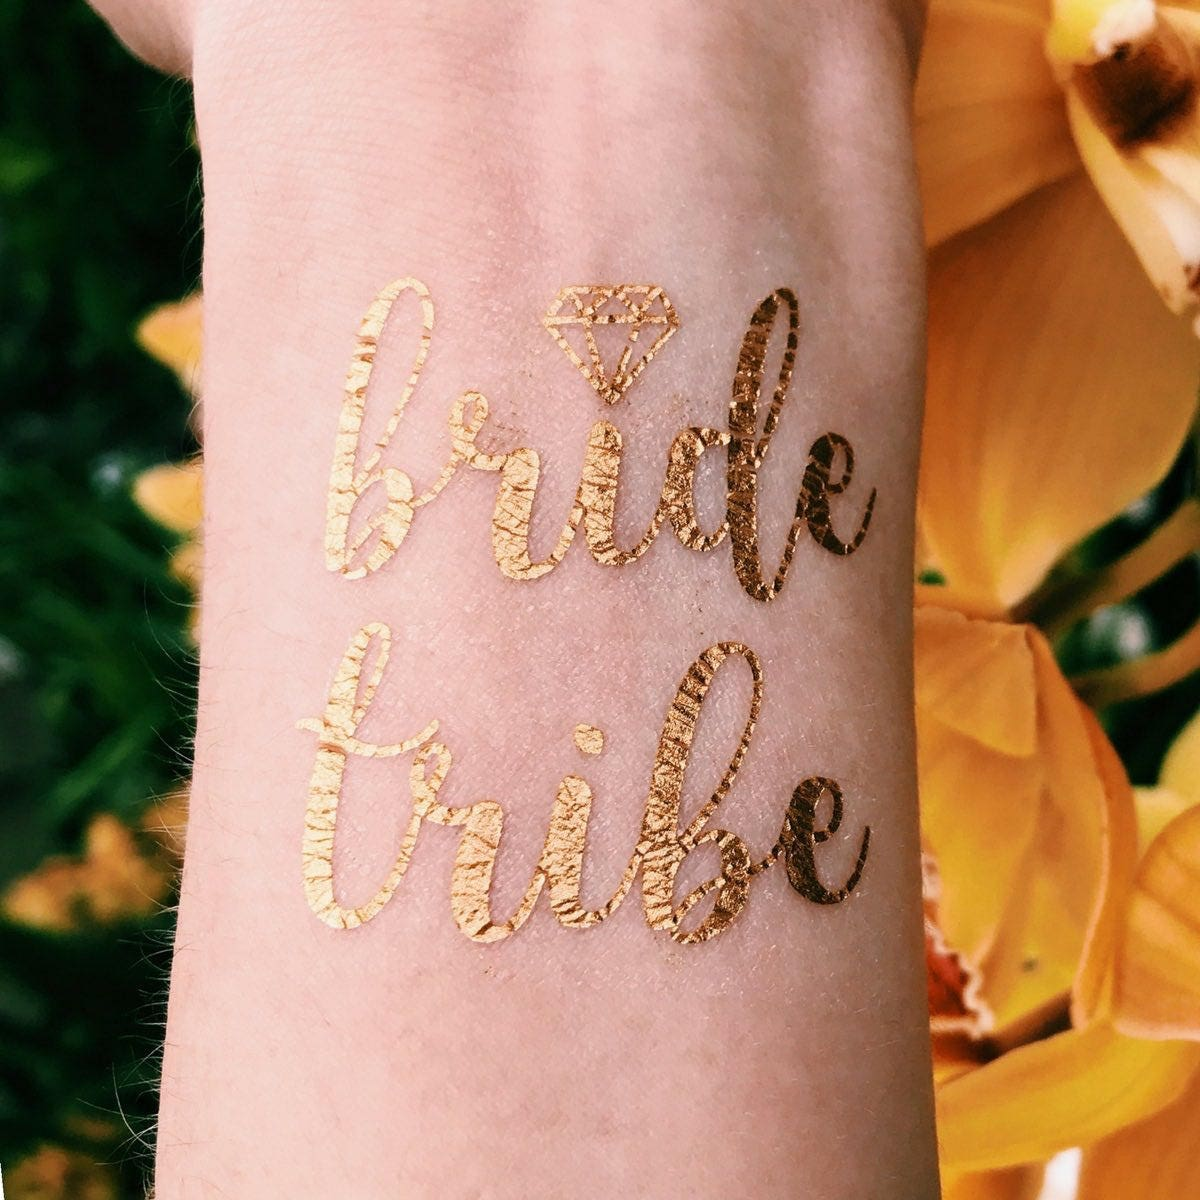 24 Bridesmaid Temporary Tattoos for bachelorette party favors